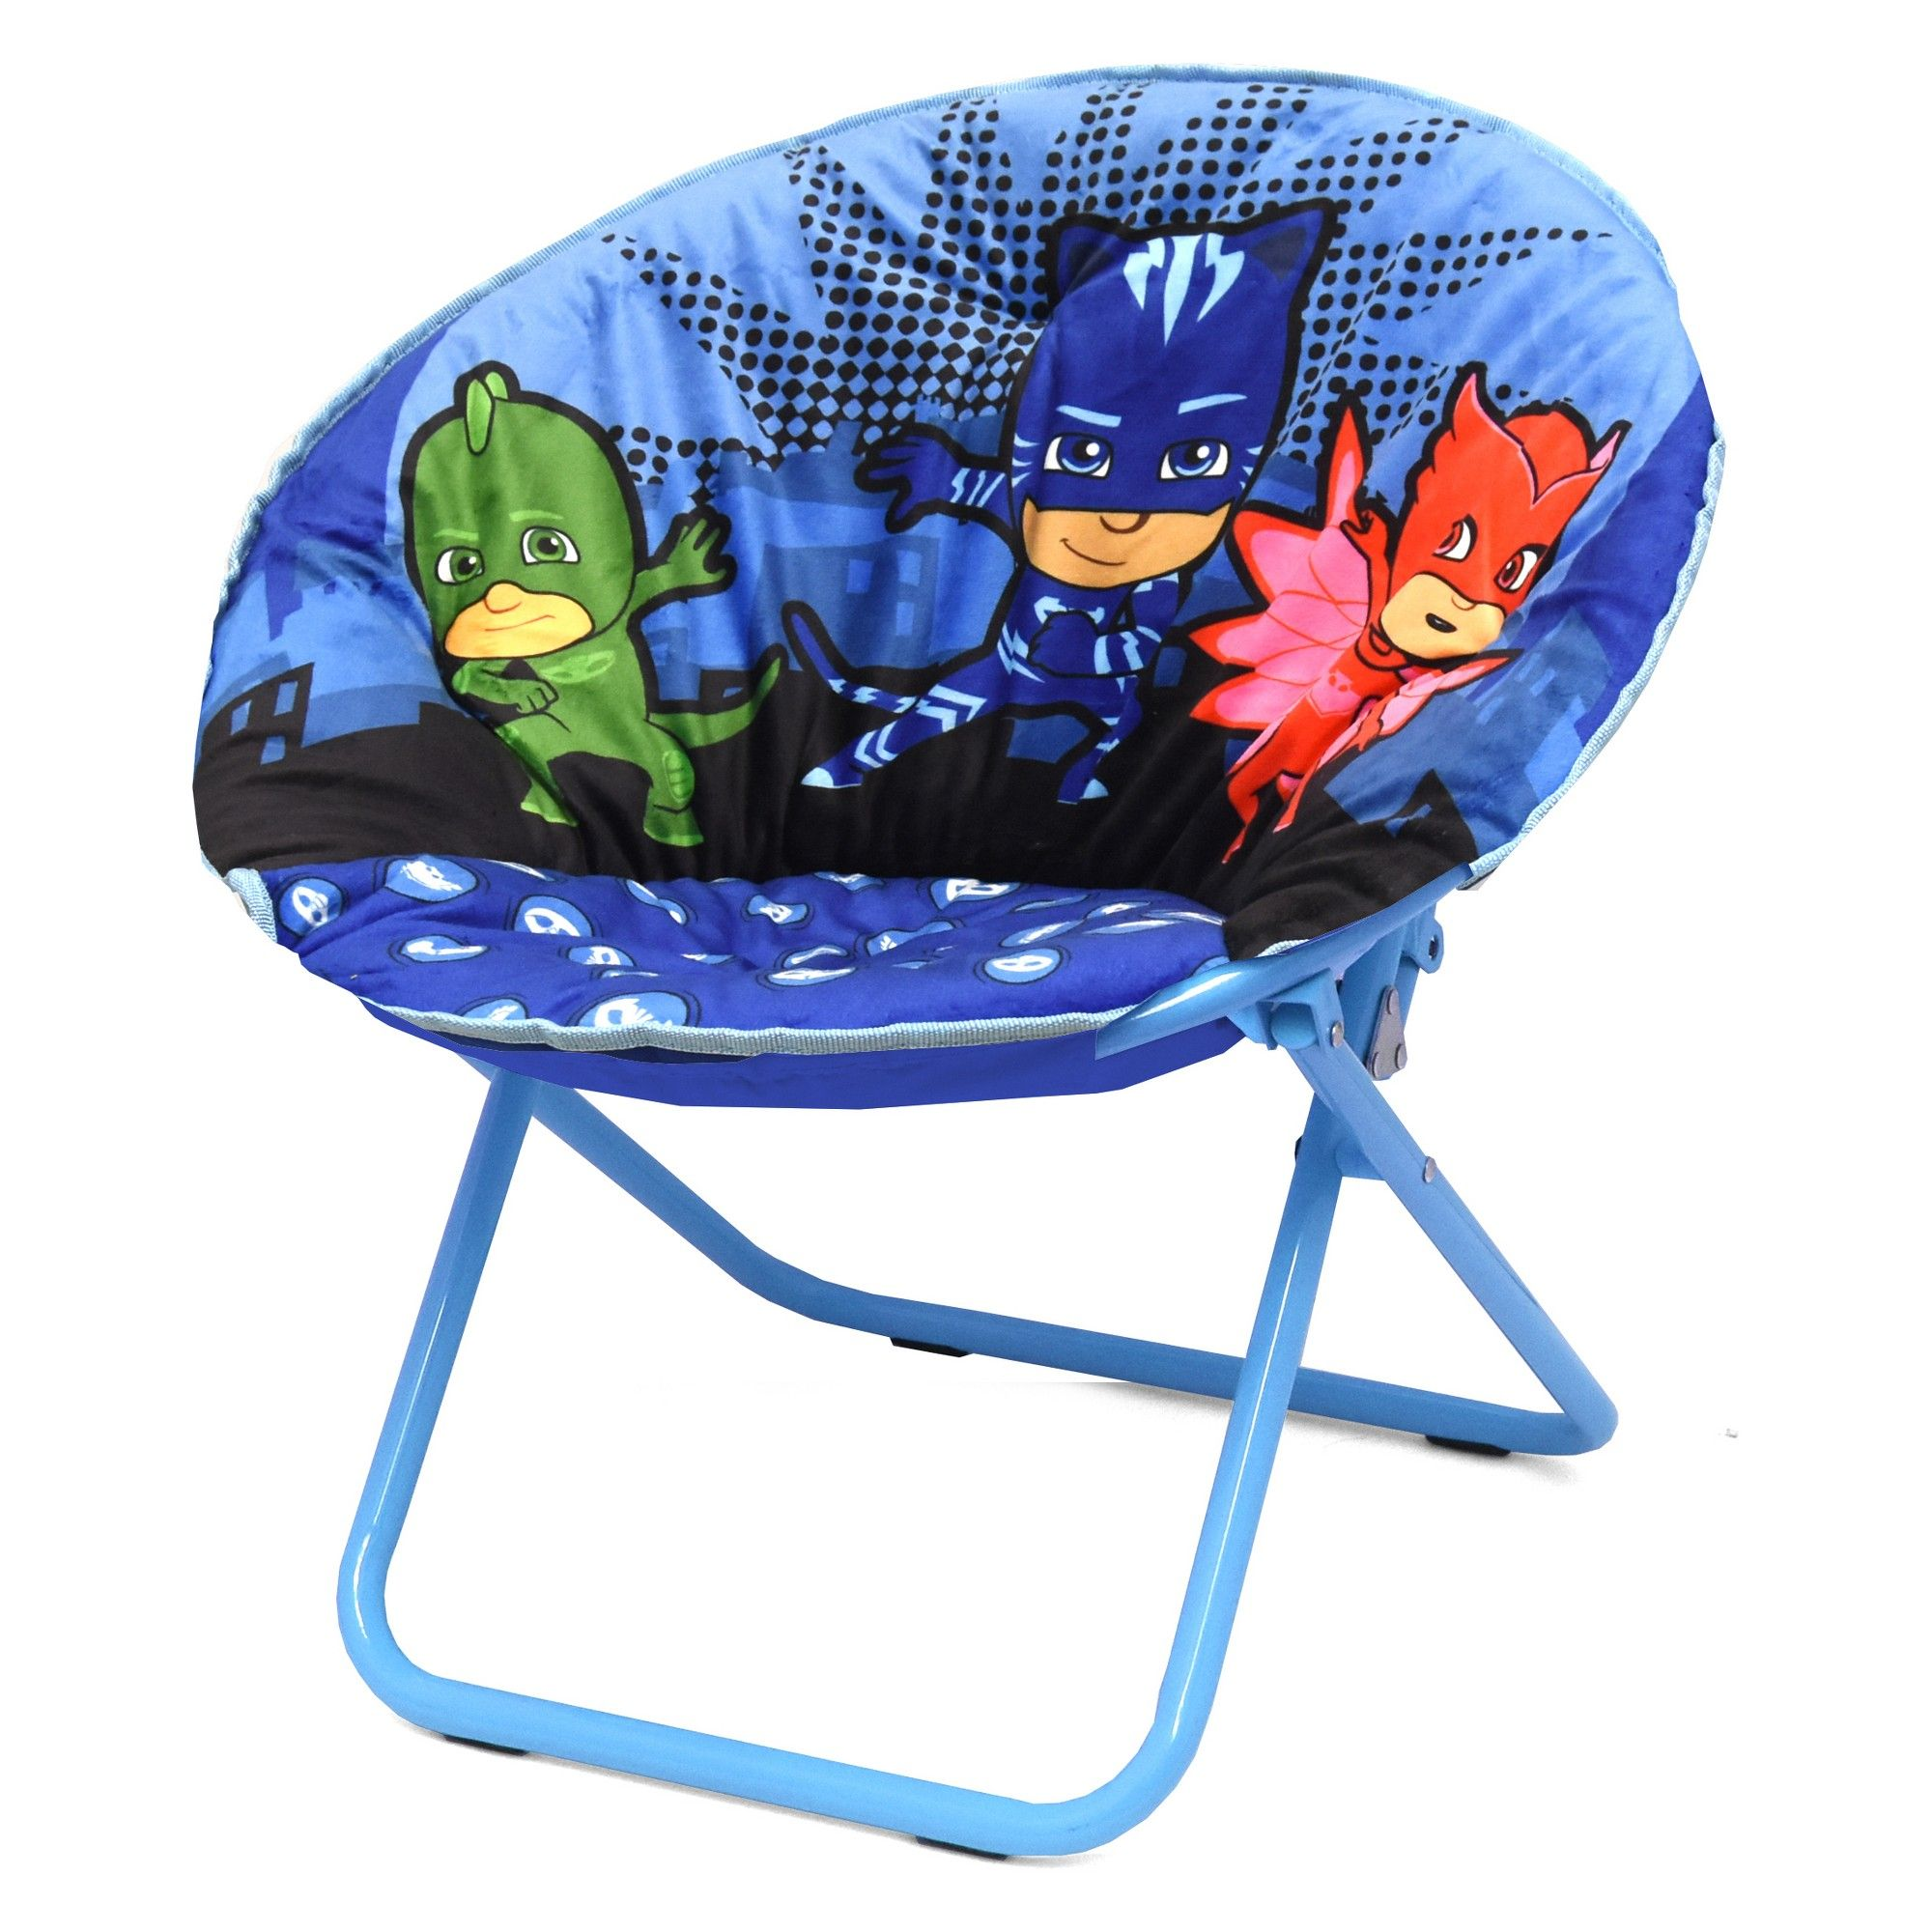 PJ Masks Kids Saucer Chair Entertainment One Mask for